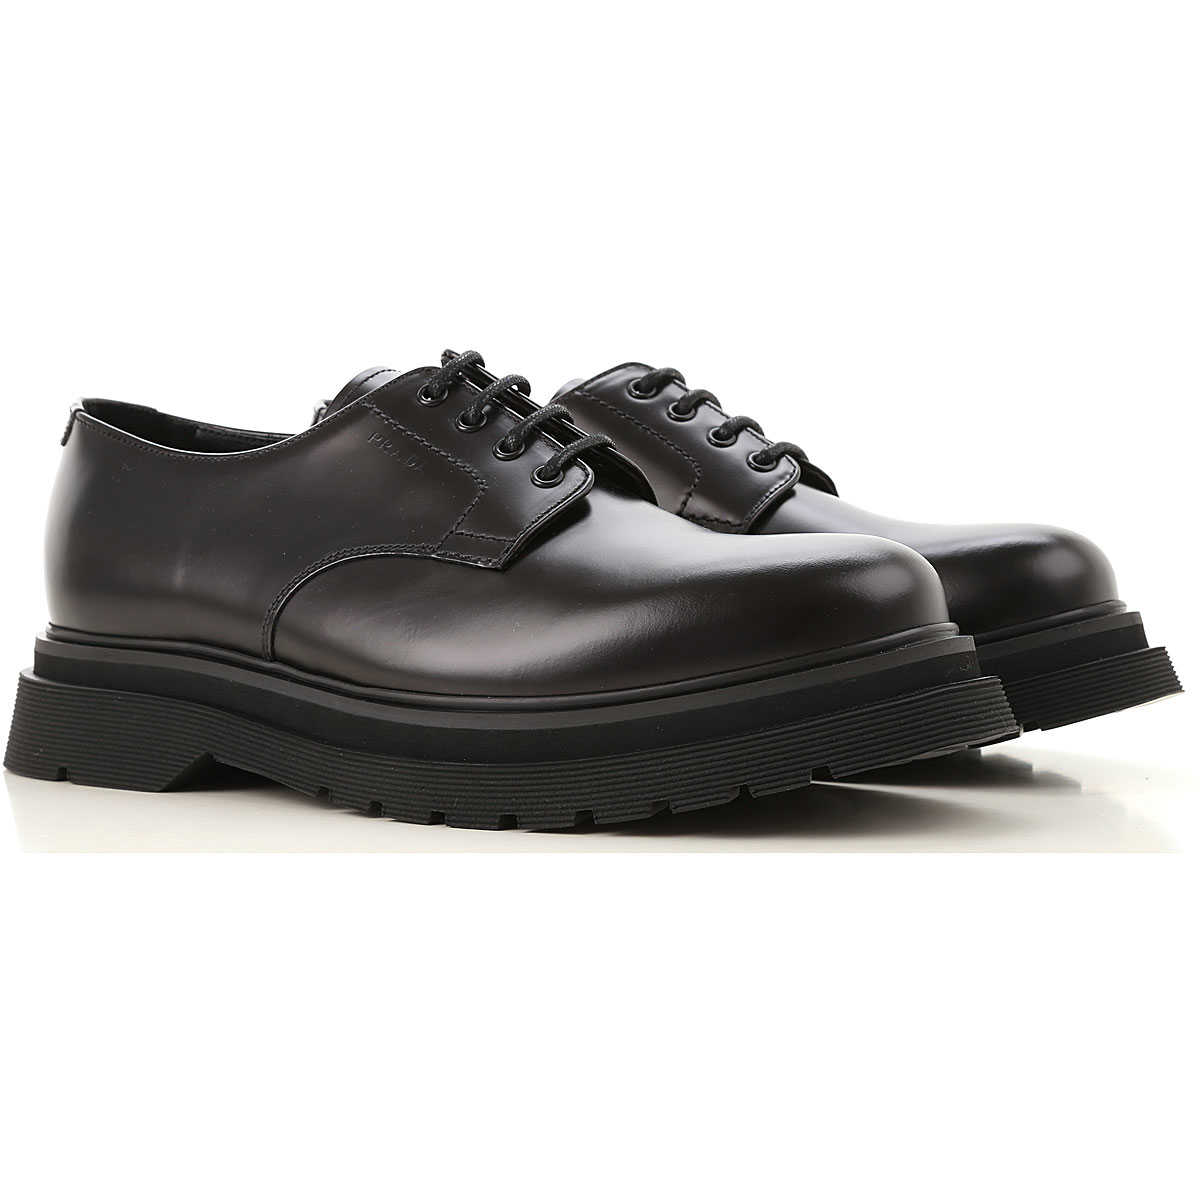 Prada Lace Up Shoes for Men Oxfords Derbies and Brogues SE - GOOFASH